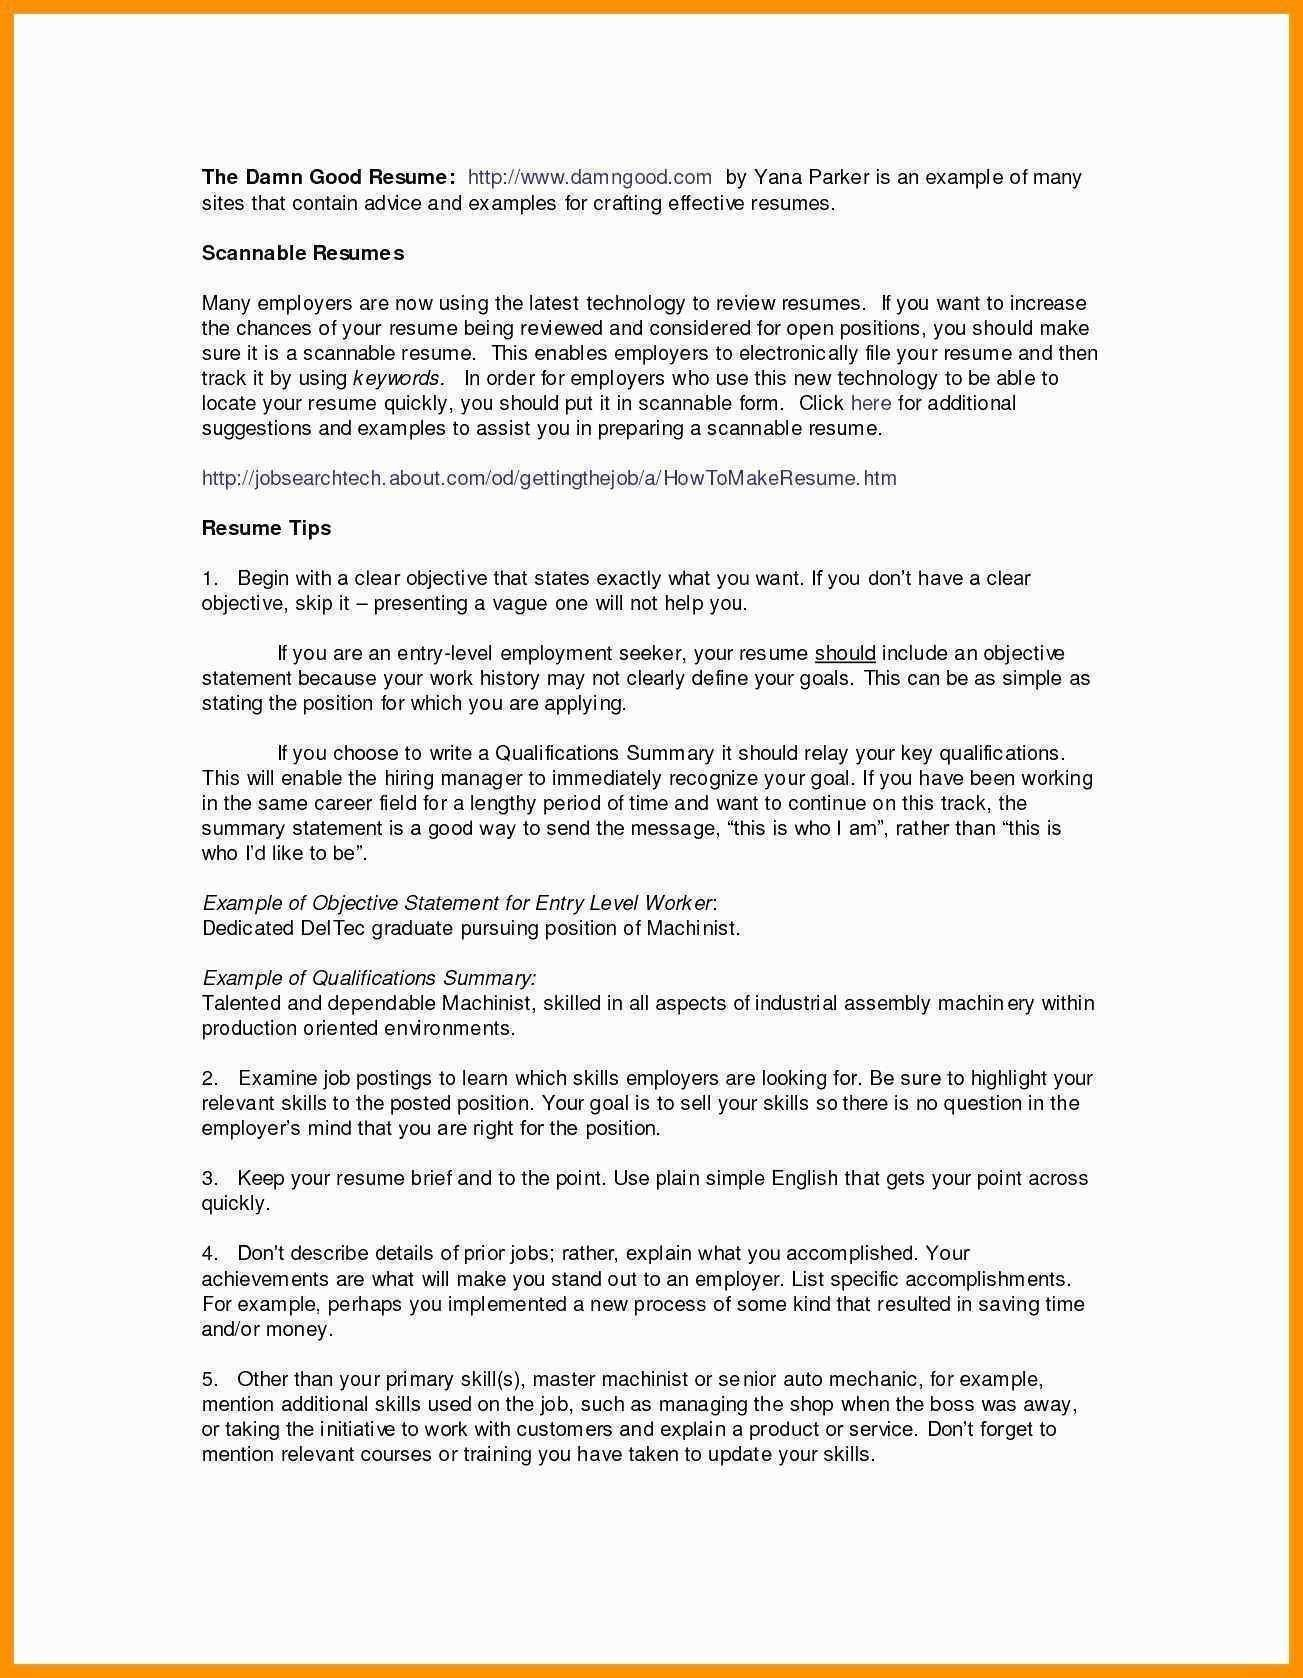 I Have attached My Resume Sample Email Cover Letter with attached Resume for What W